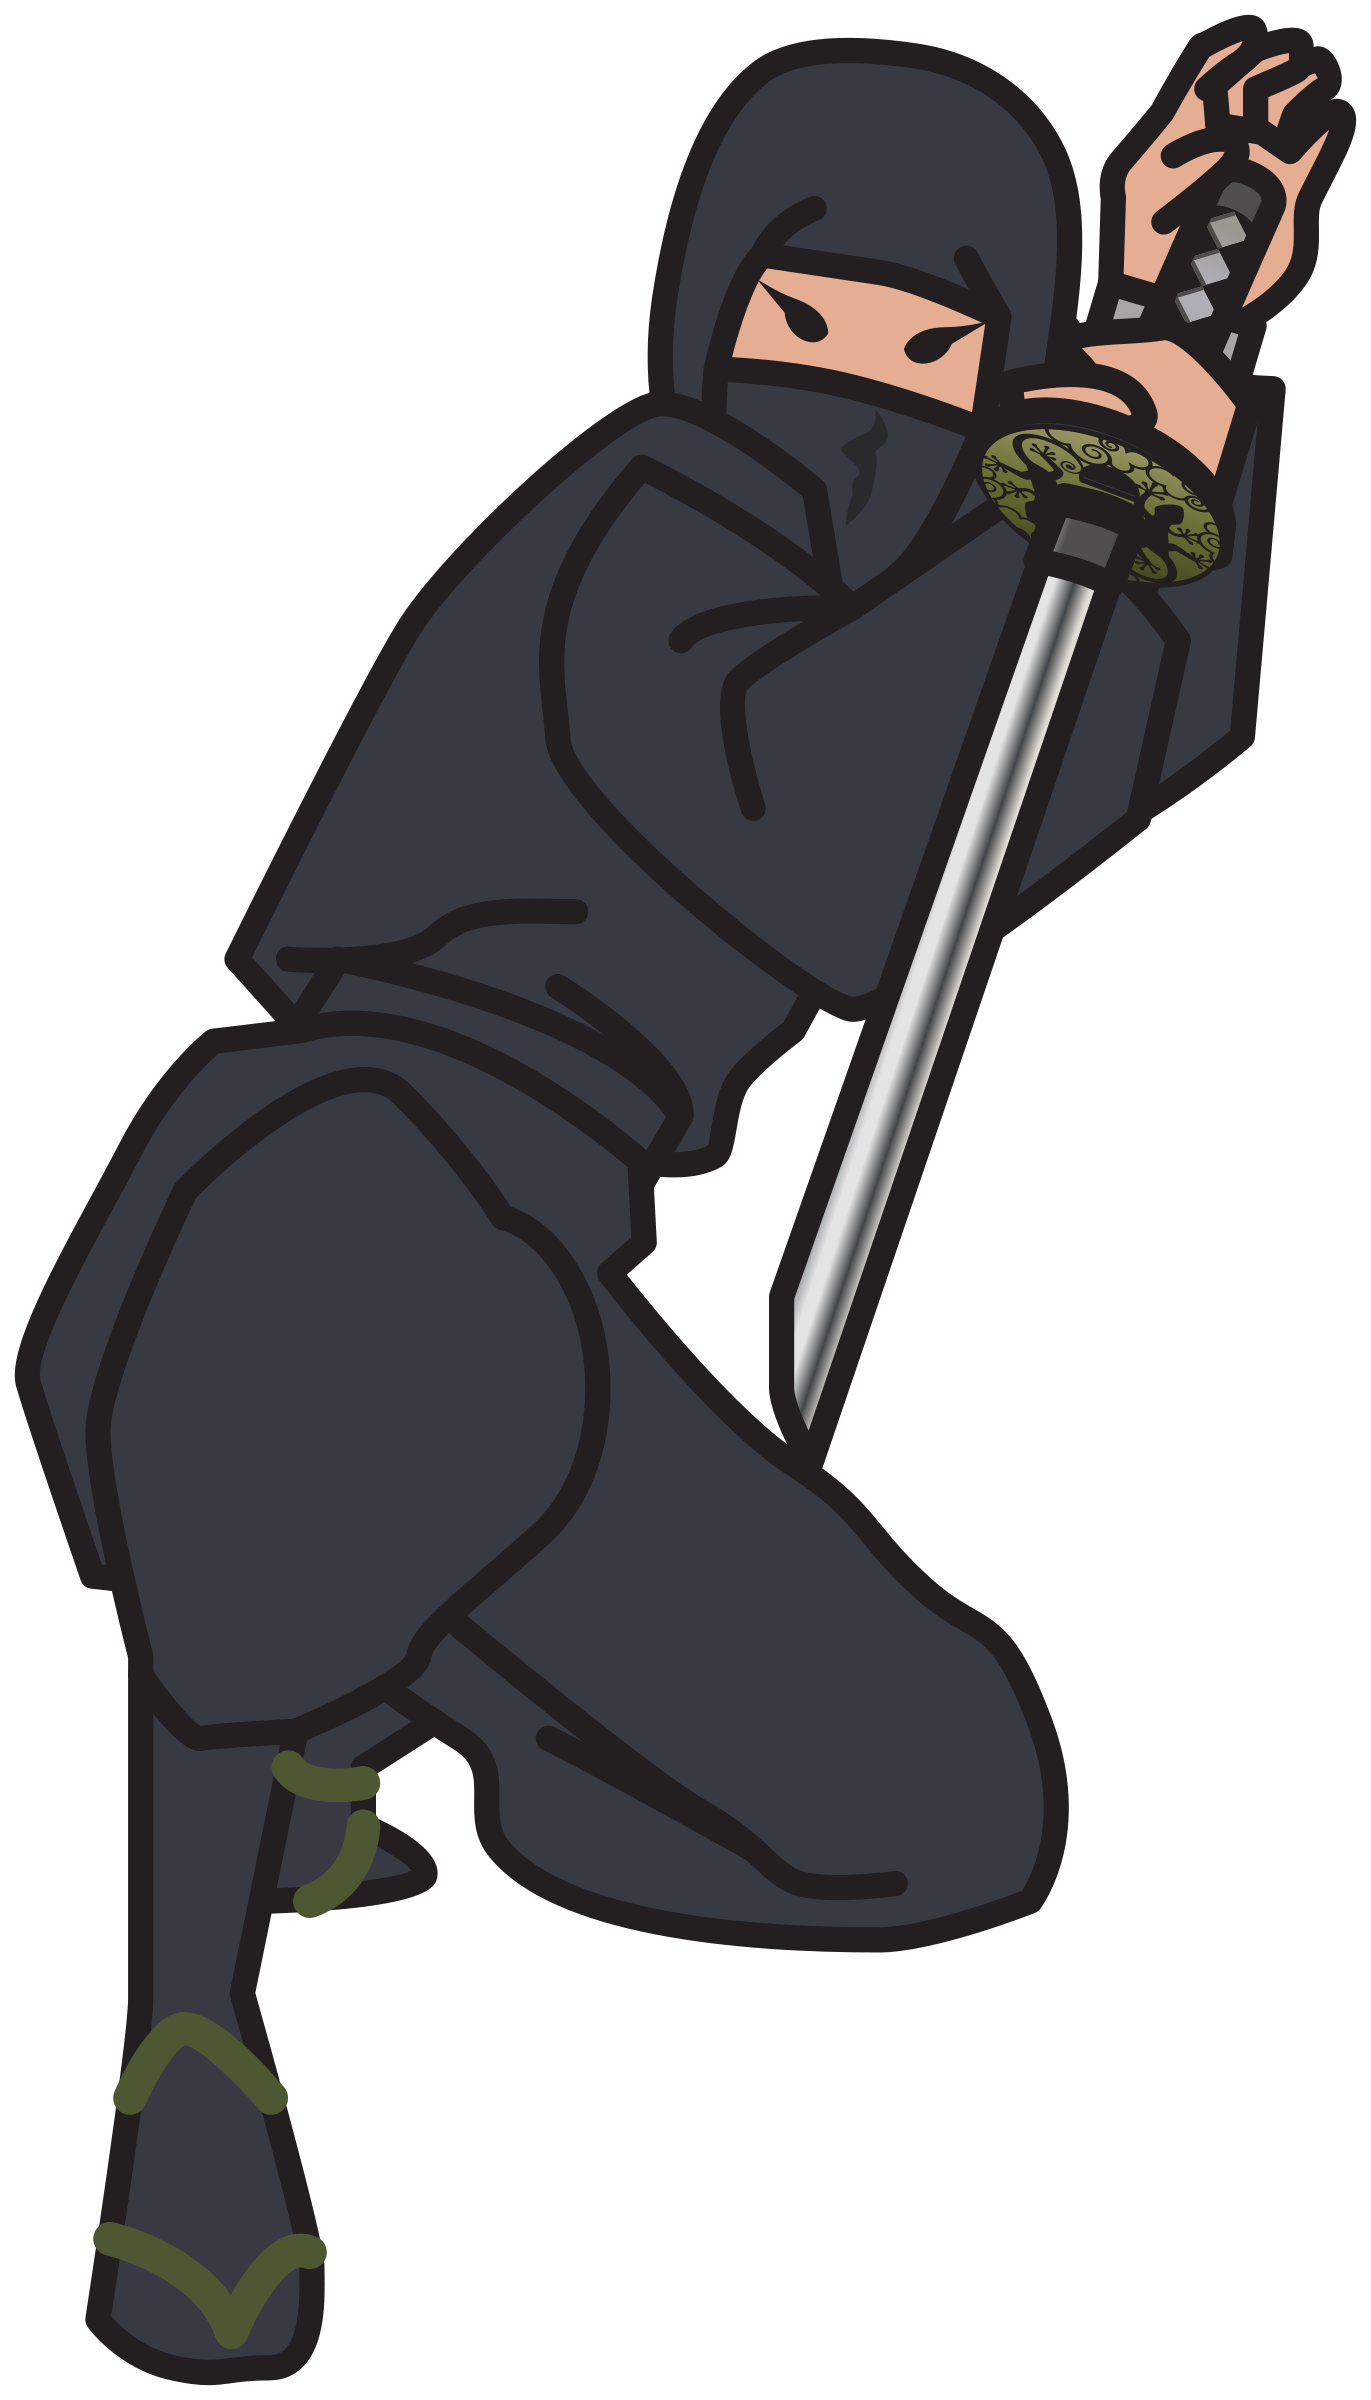 Ninja with a sword, attacking by Juhele